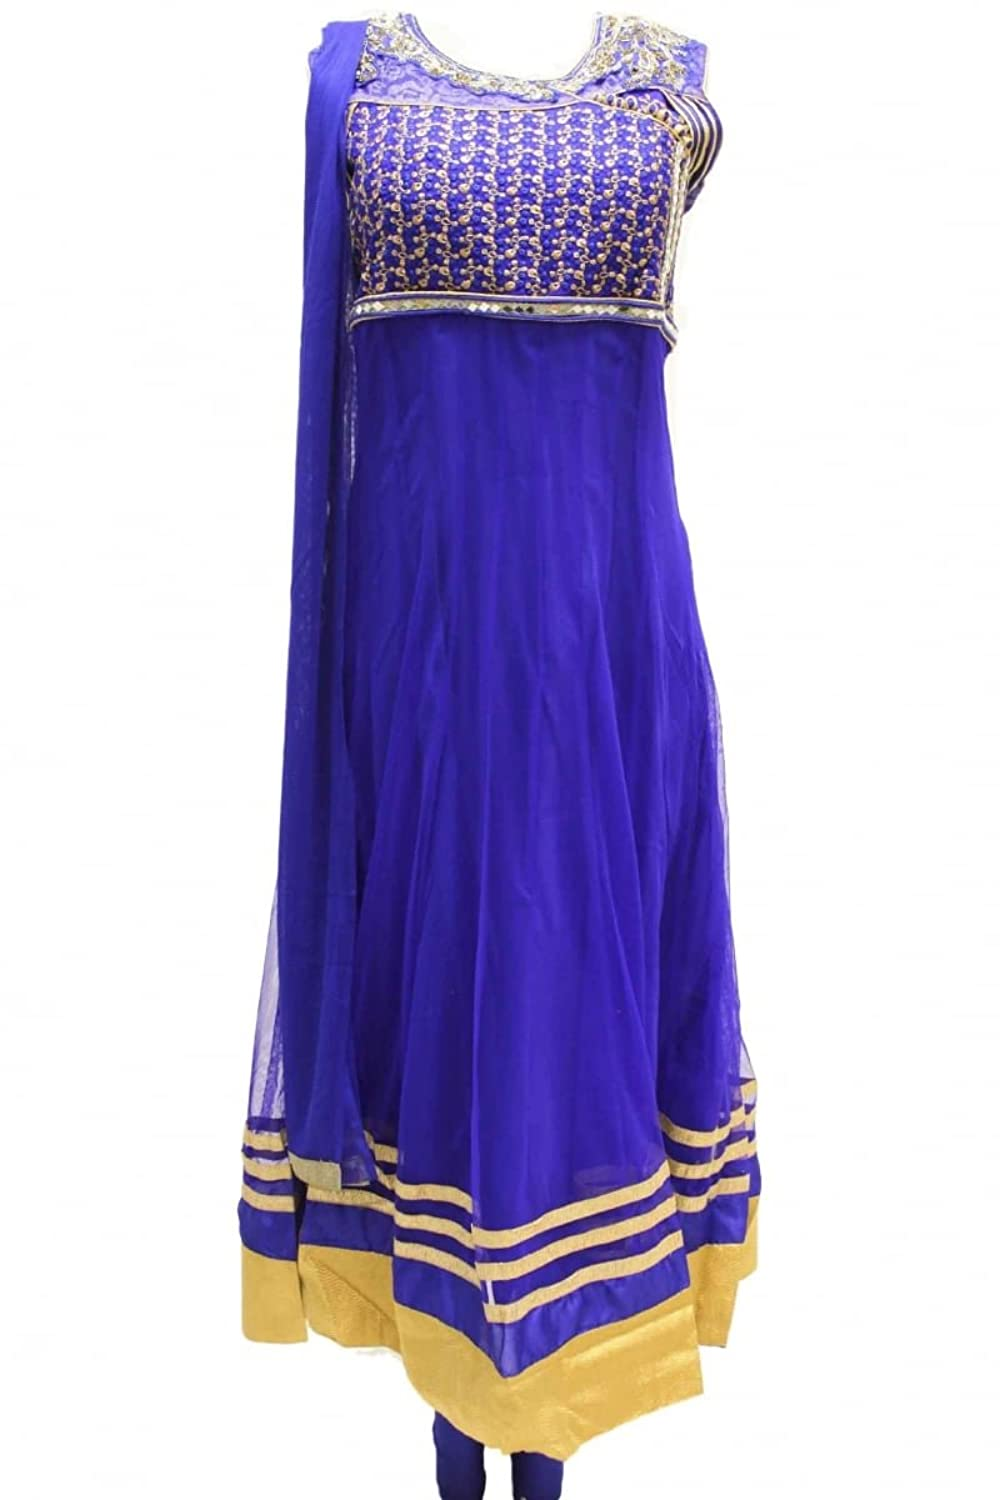 CSX1168 Royal Blue and Gold Churidar Suit Designer Indian Bollywood Chudidar